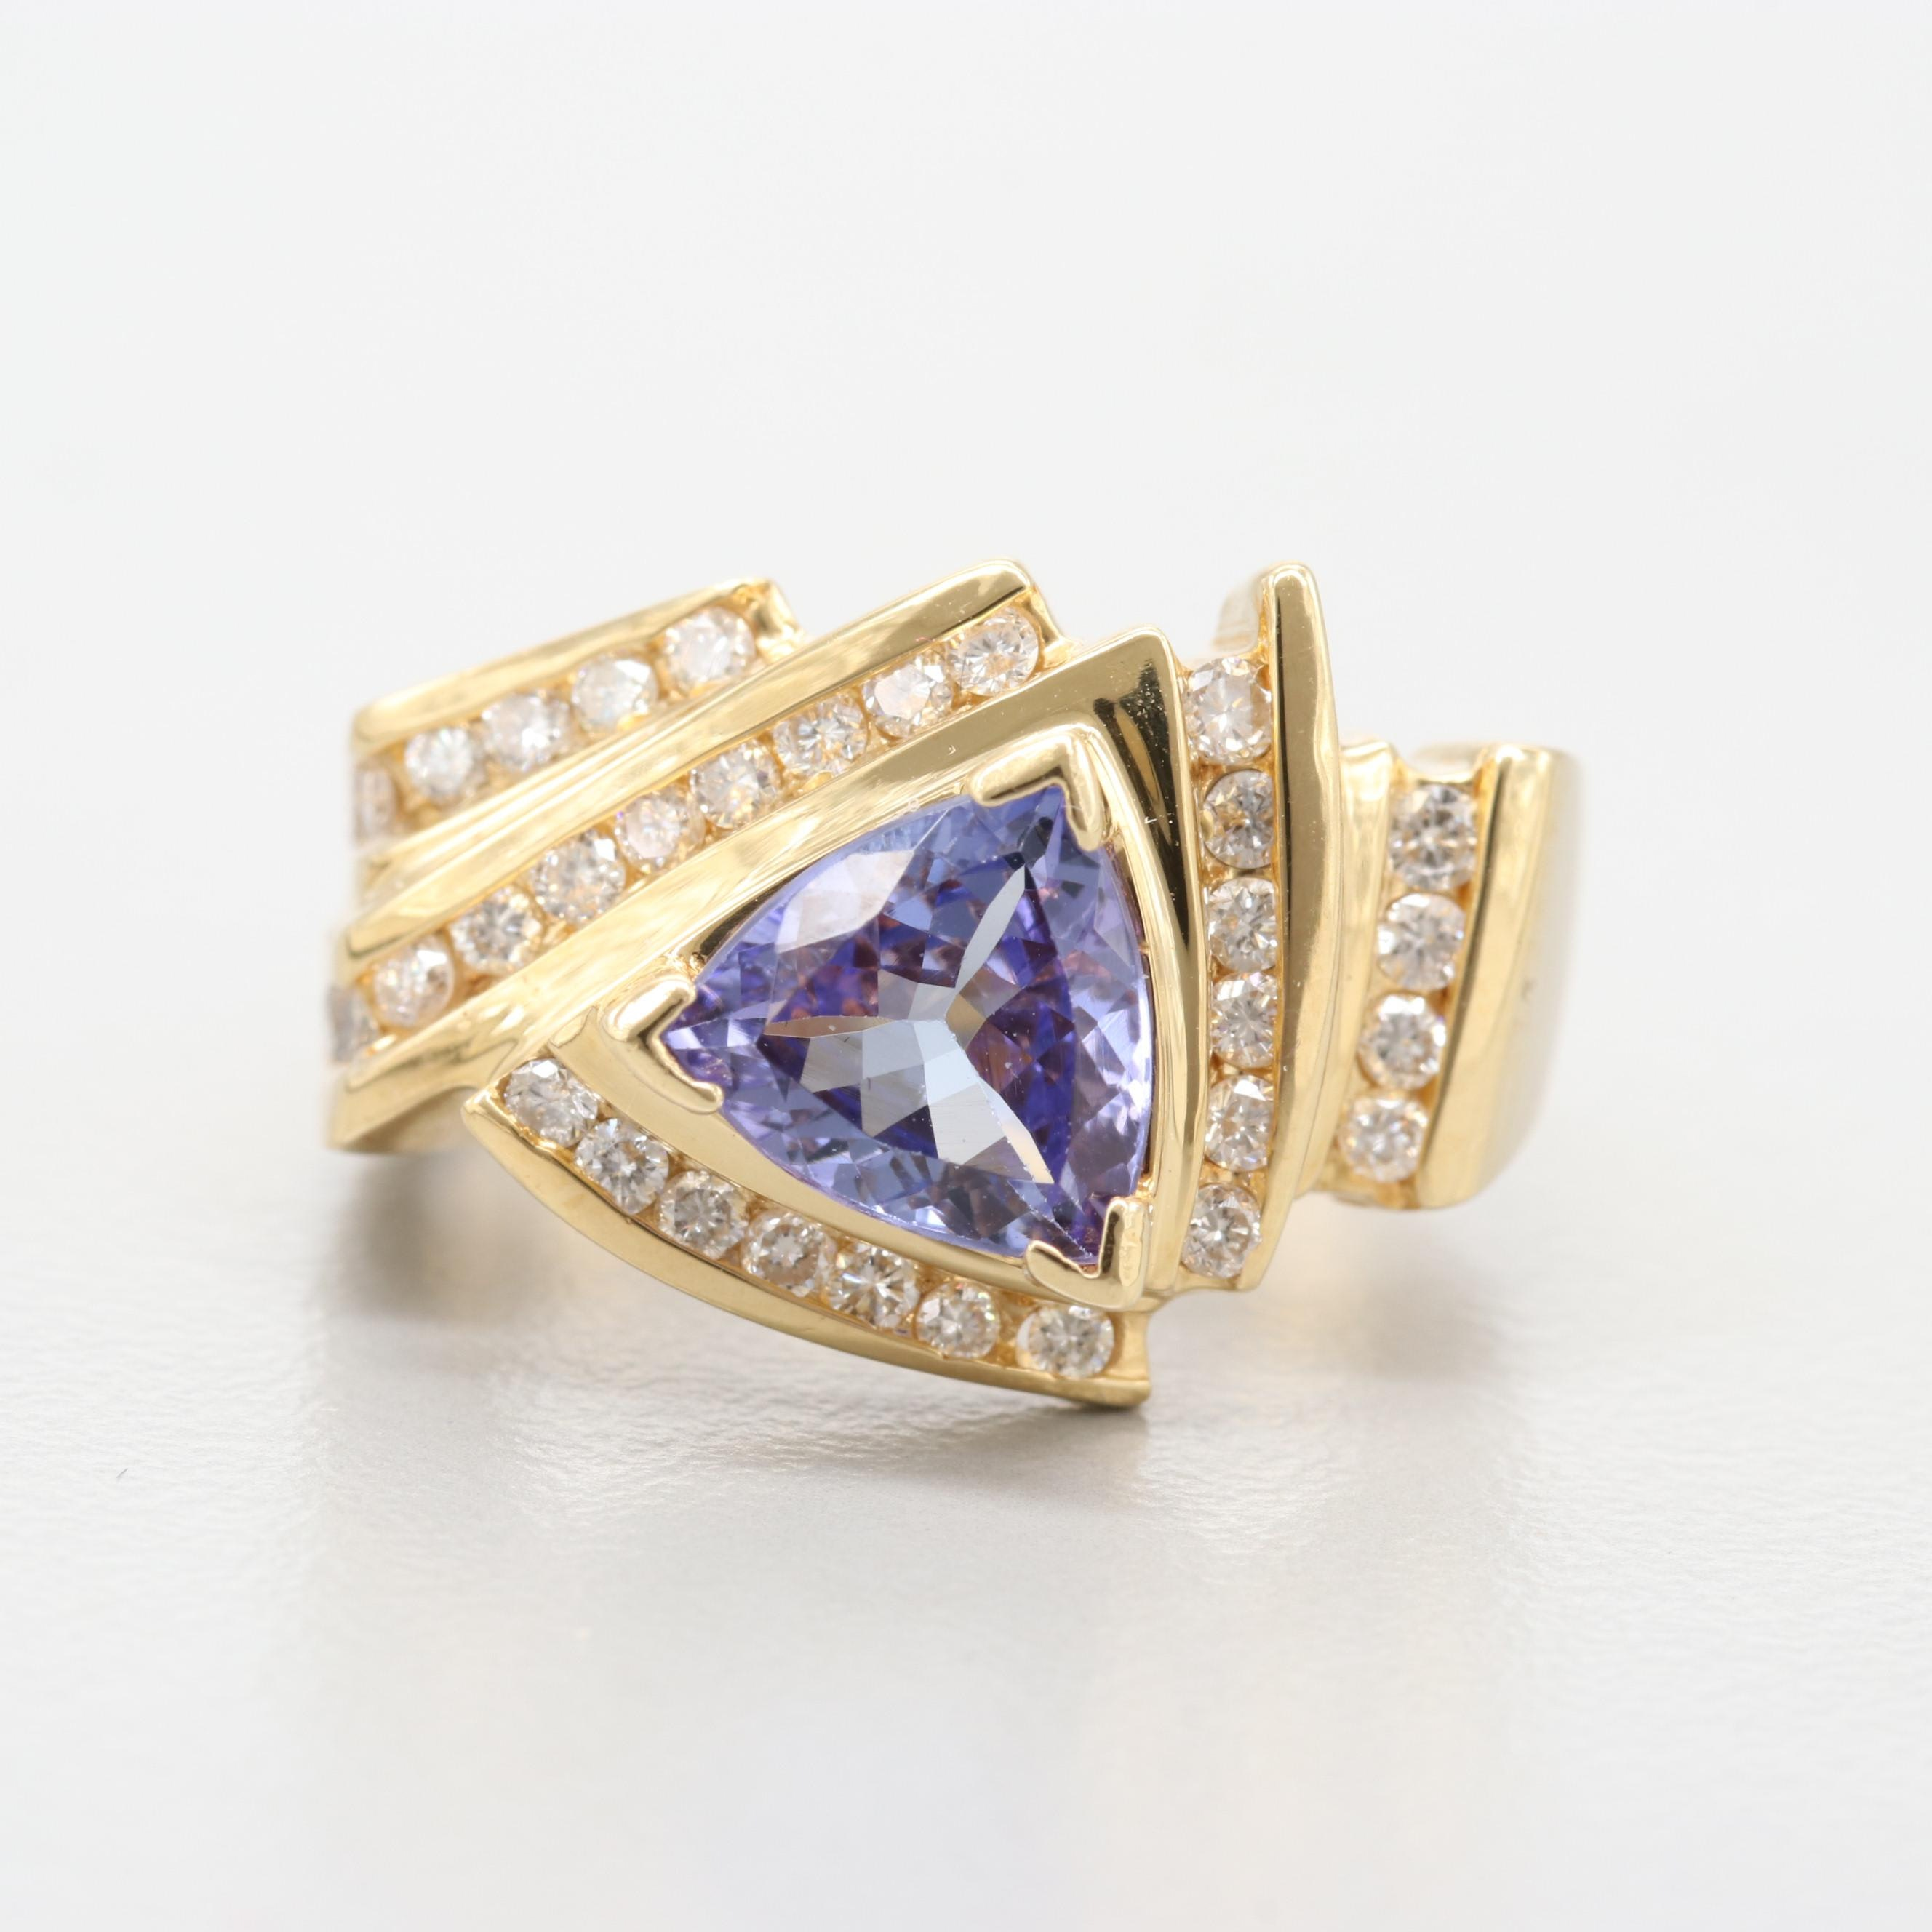 Le Vian 18K Yellow Gold Tanzanite and Diamond Ring